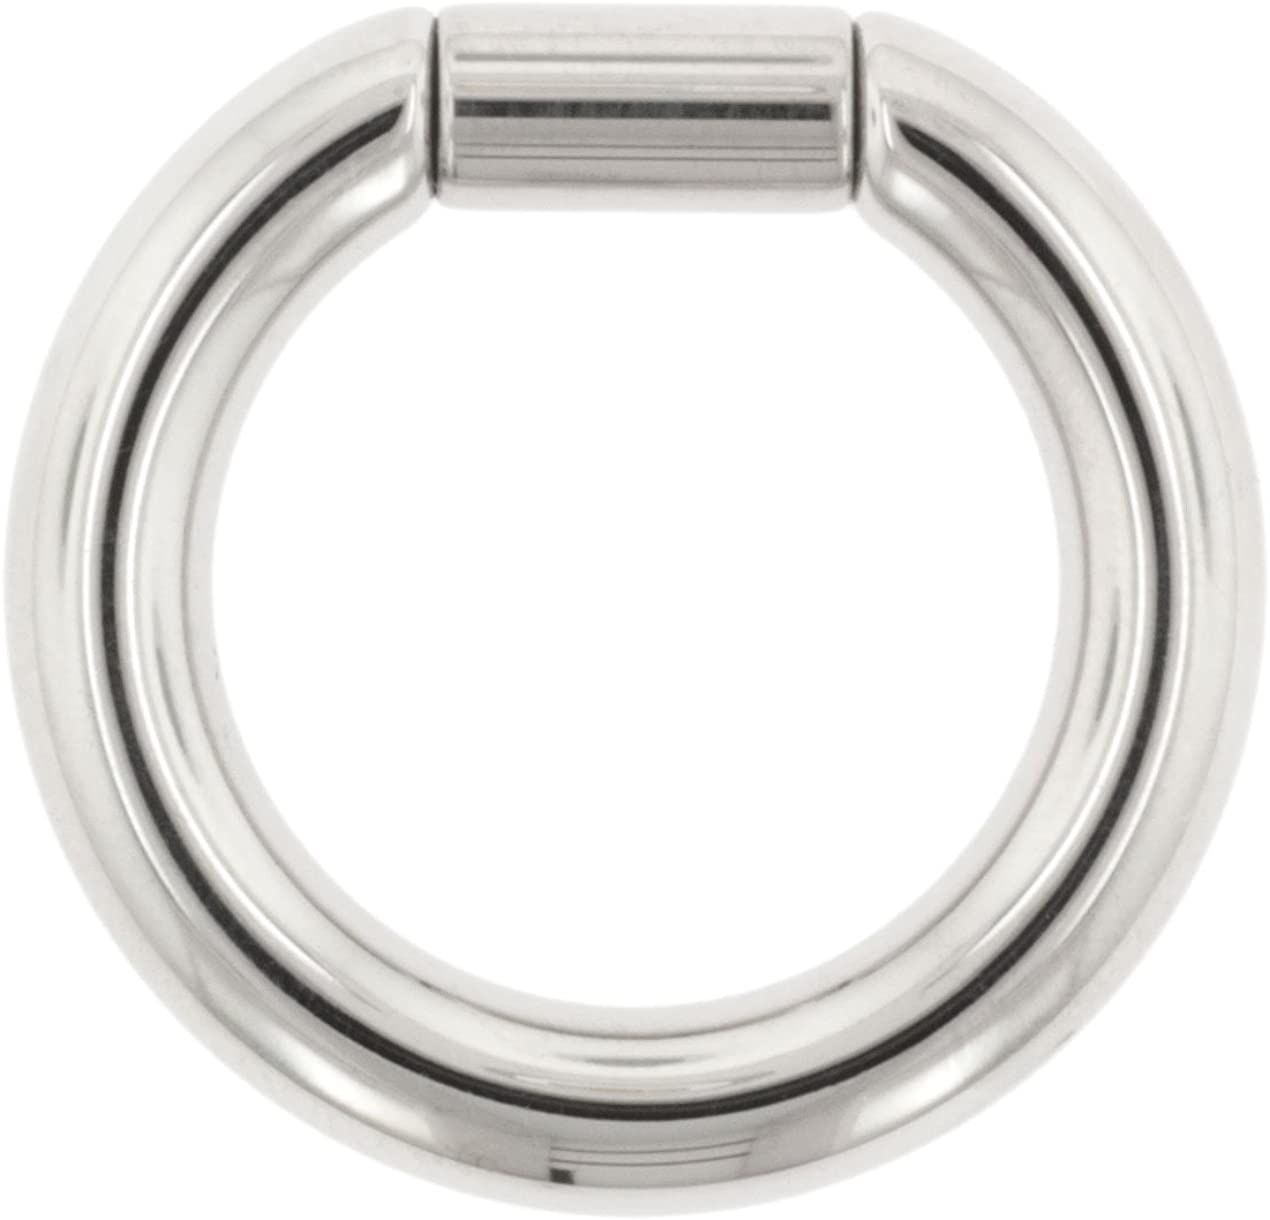 Body Circle Designs One Stainless Steel Captive Tube Ring 14g Sold Individually. Order Two for A Pair. 5//16